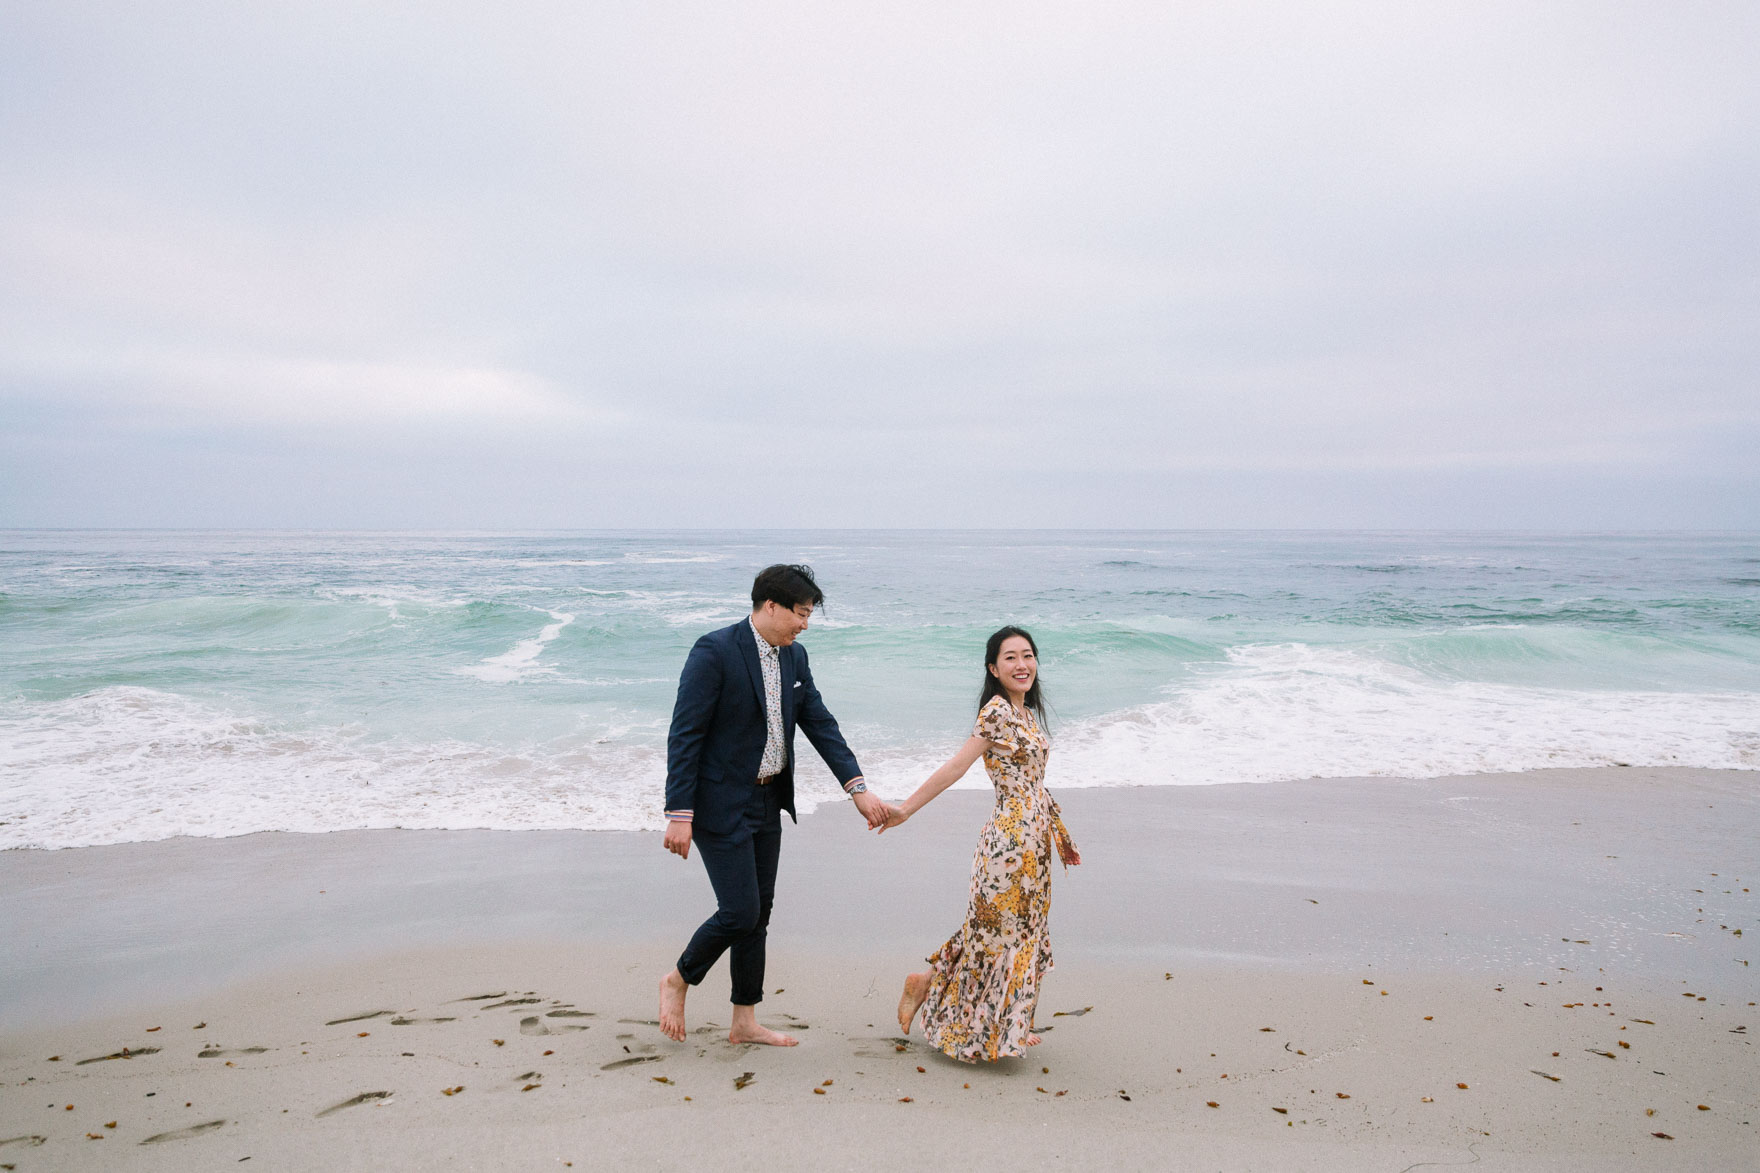 Swept Away at Windansea – Photo by Let's Frolic Together